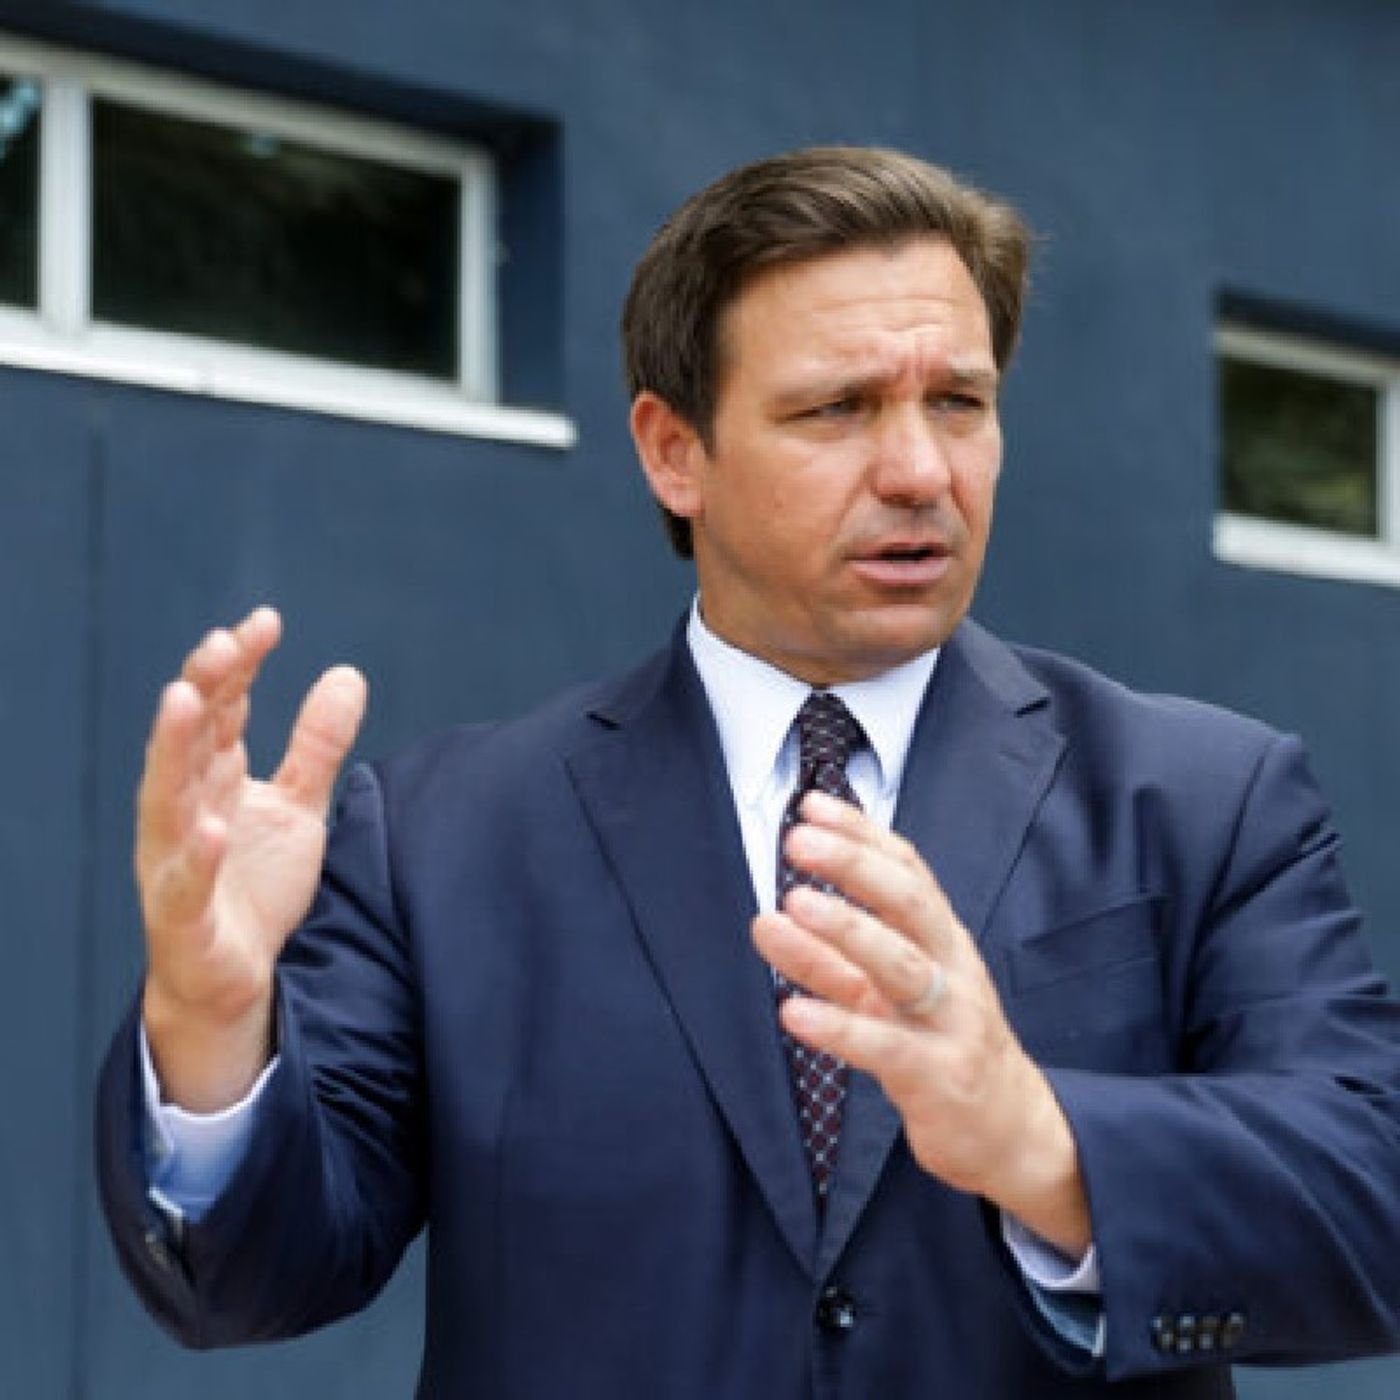 Episode 1309 - DeSantis: People Moving to Florida 'Overwhelmingly' Registering as Republicans, Including Democrats